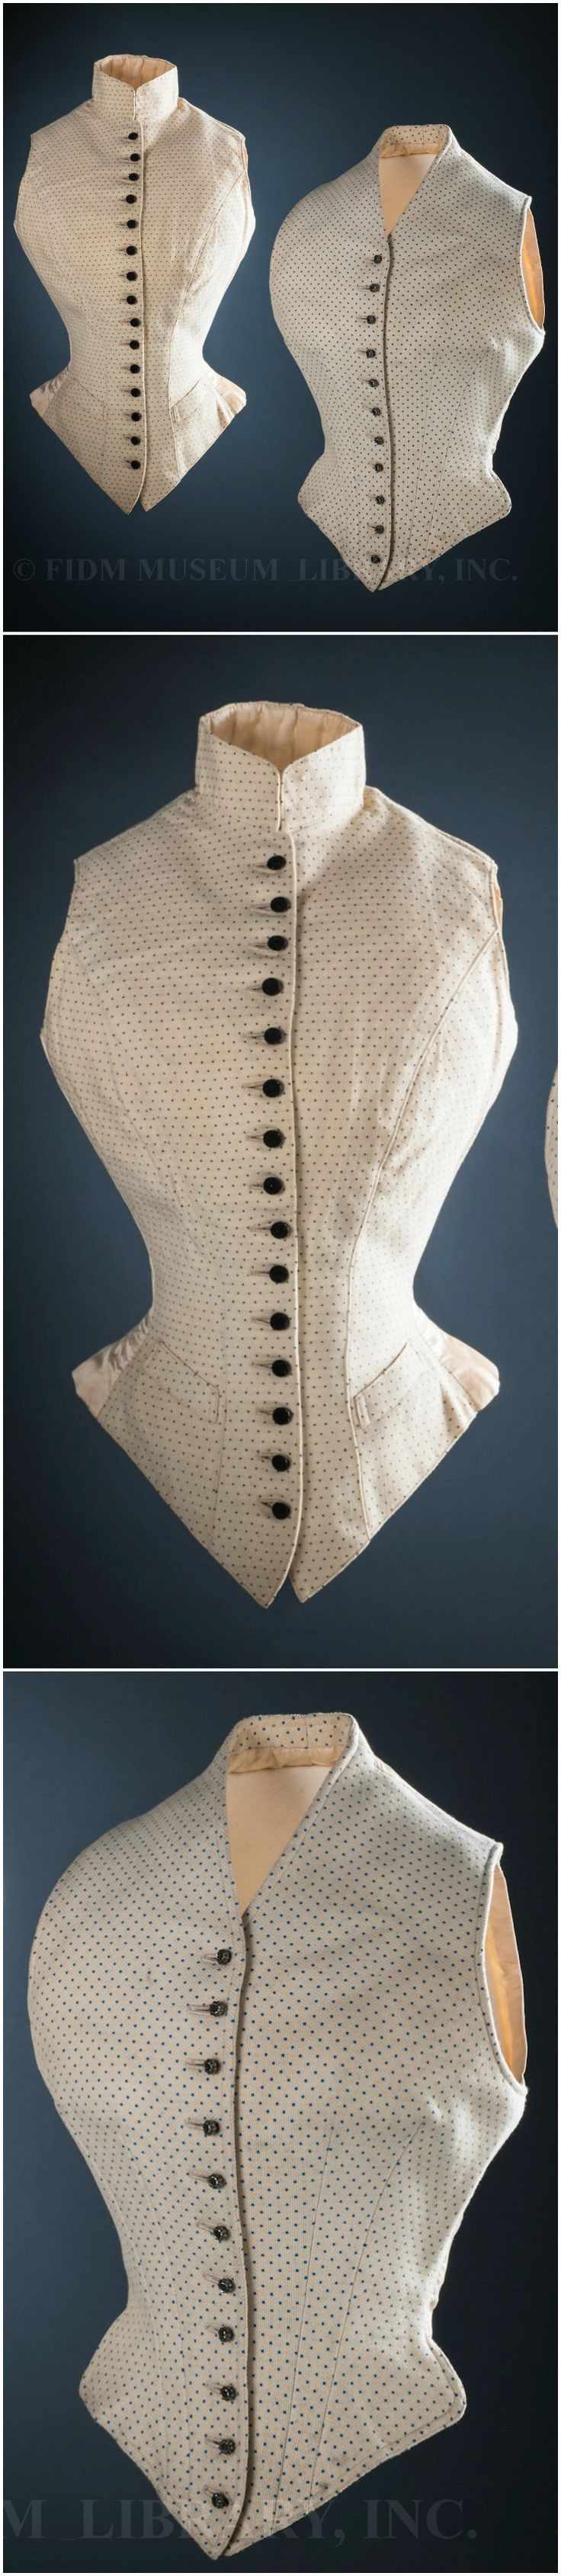 """Waistcoats made for Alexandra, Princess of Wales, by J. Busvine & Co., London, 1890s. Helen Larson Historic Fashion Collection. Via FIDM Museum Blog. FIDM Museum: """"Though masculine in style, the hourglass shape of these dotted wool waistcoats could only have been achieved by a corset—probably a lightly-boned version designed for horseback riding... women typically wore sturdy, masculine-style clothing for the energetic sports of riding and hunting, though they always rode sidesaddle, in…"""